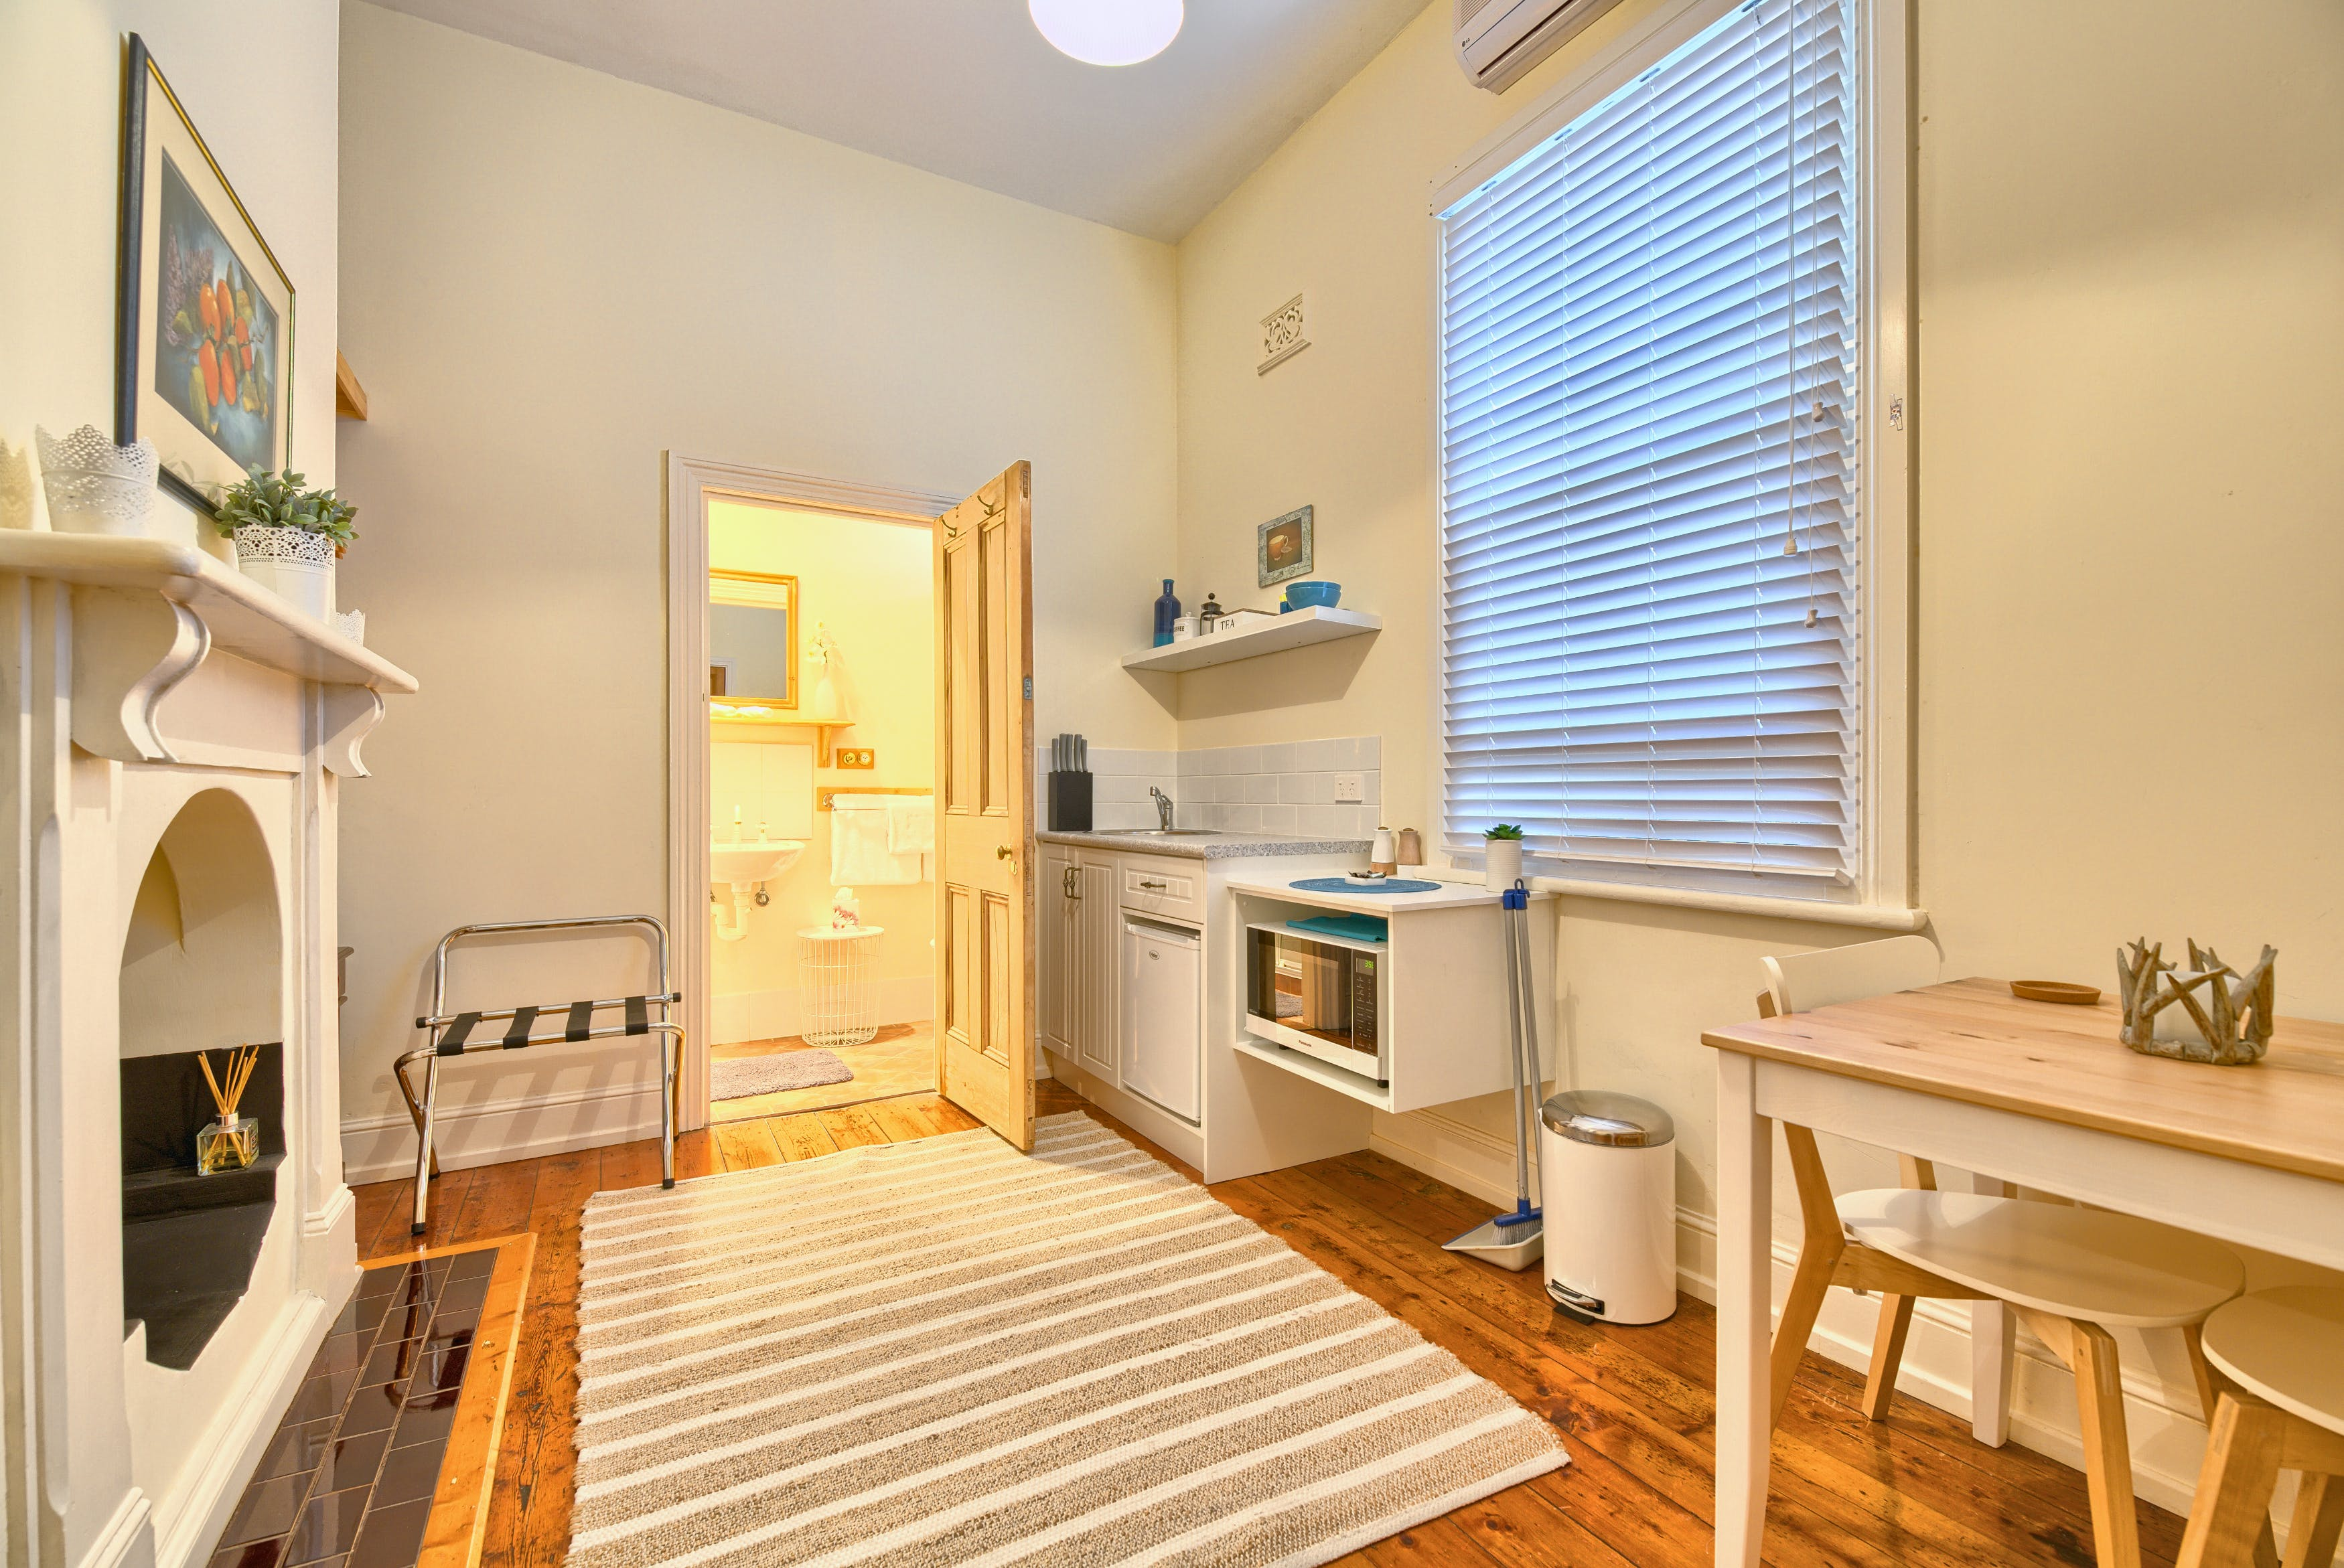 Suite 2 Kitchenette and Bathroom